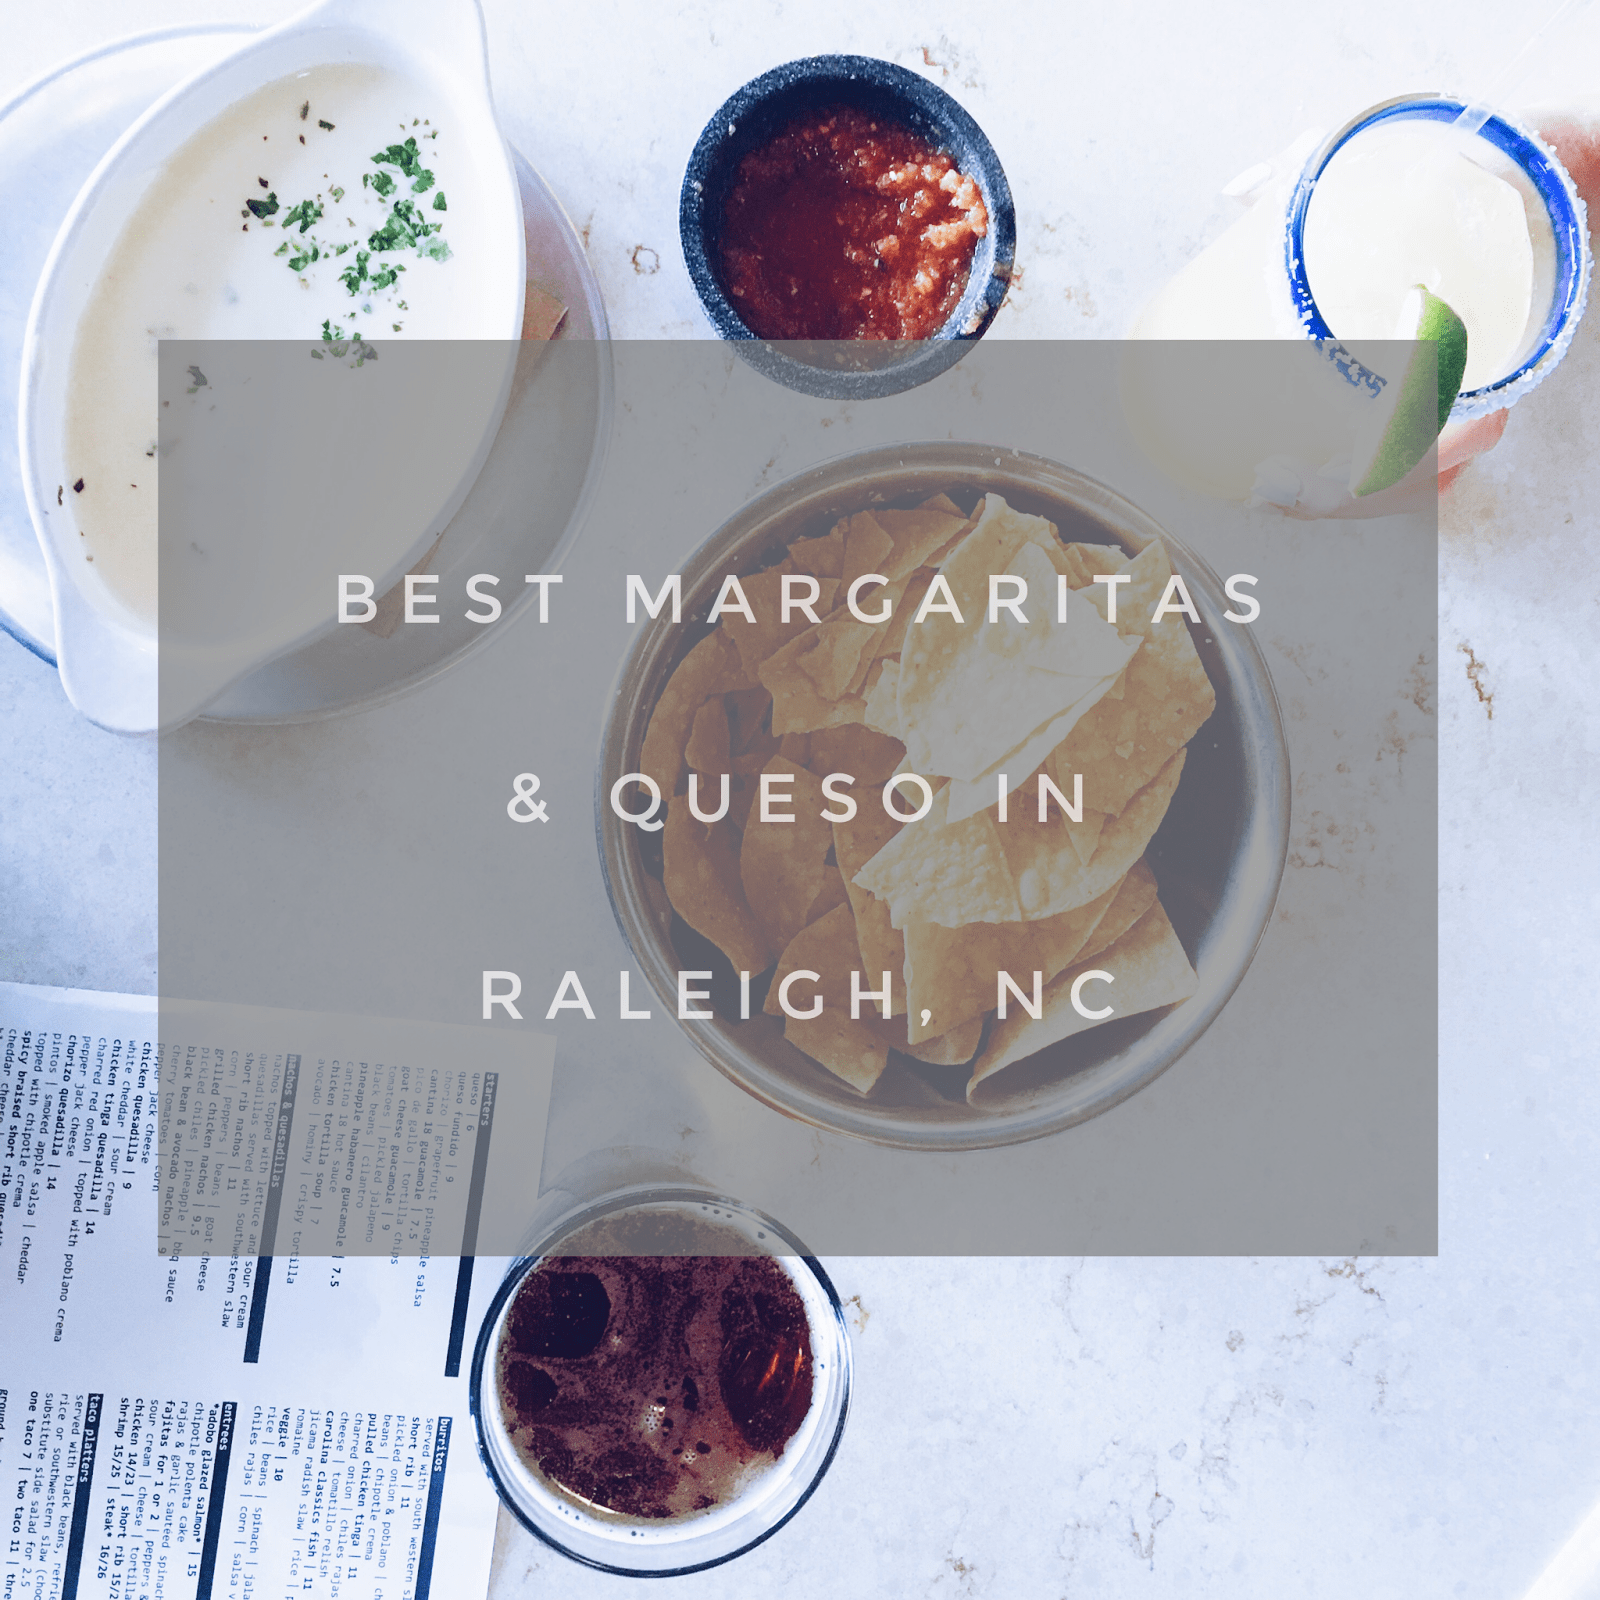 Best Margaritas and Queso in Raleigh